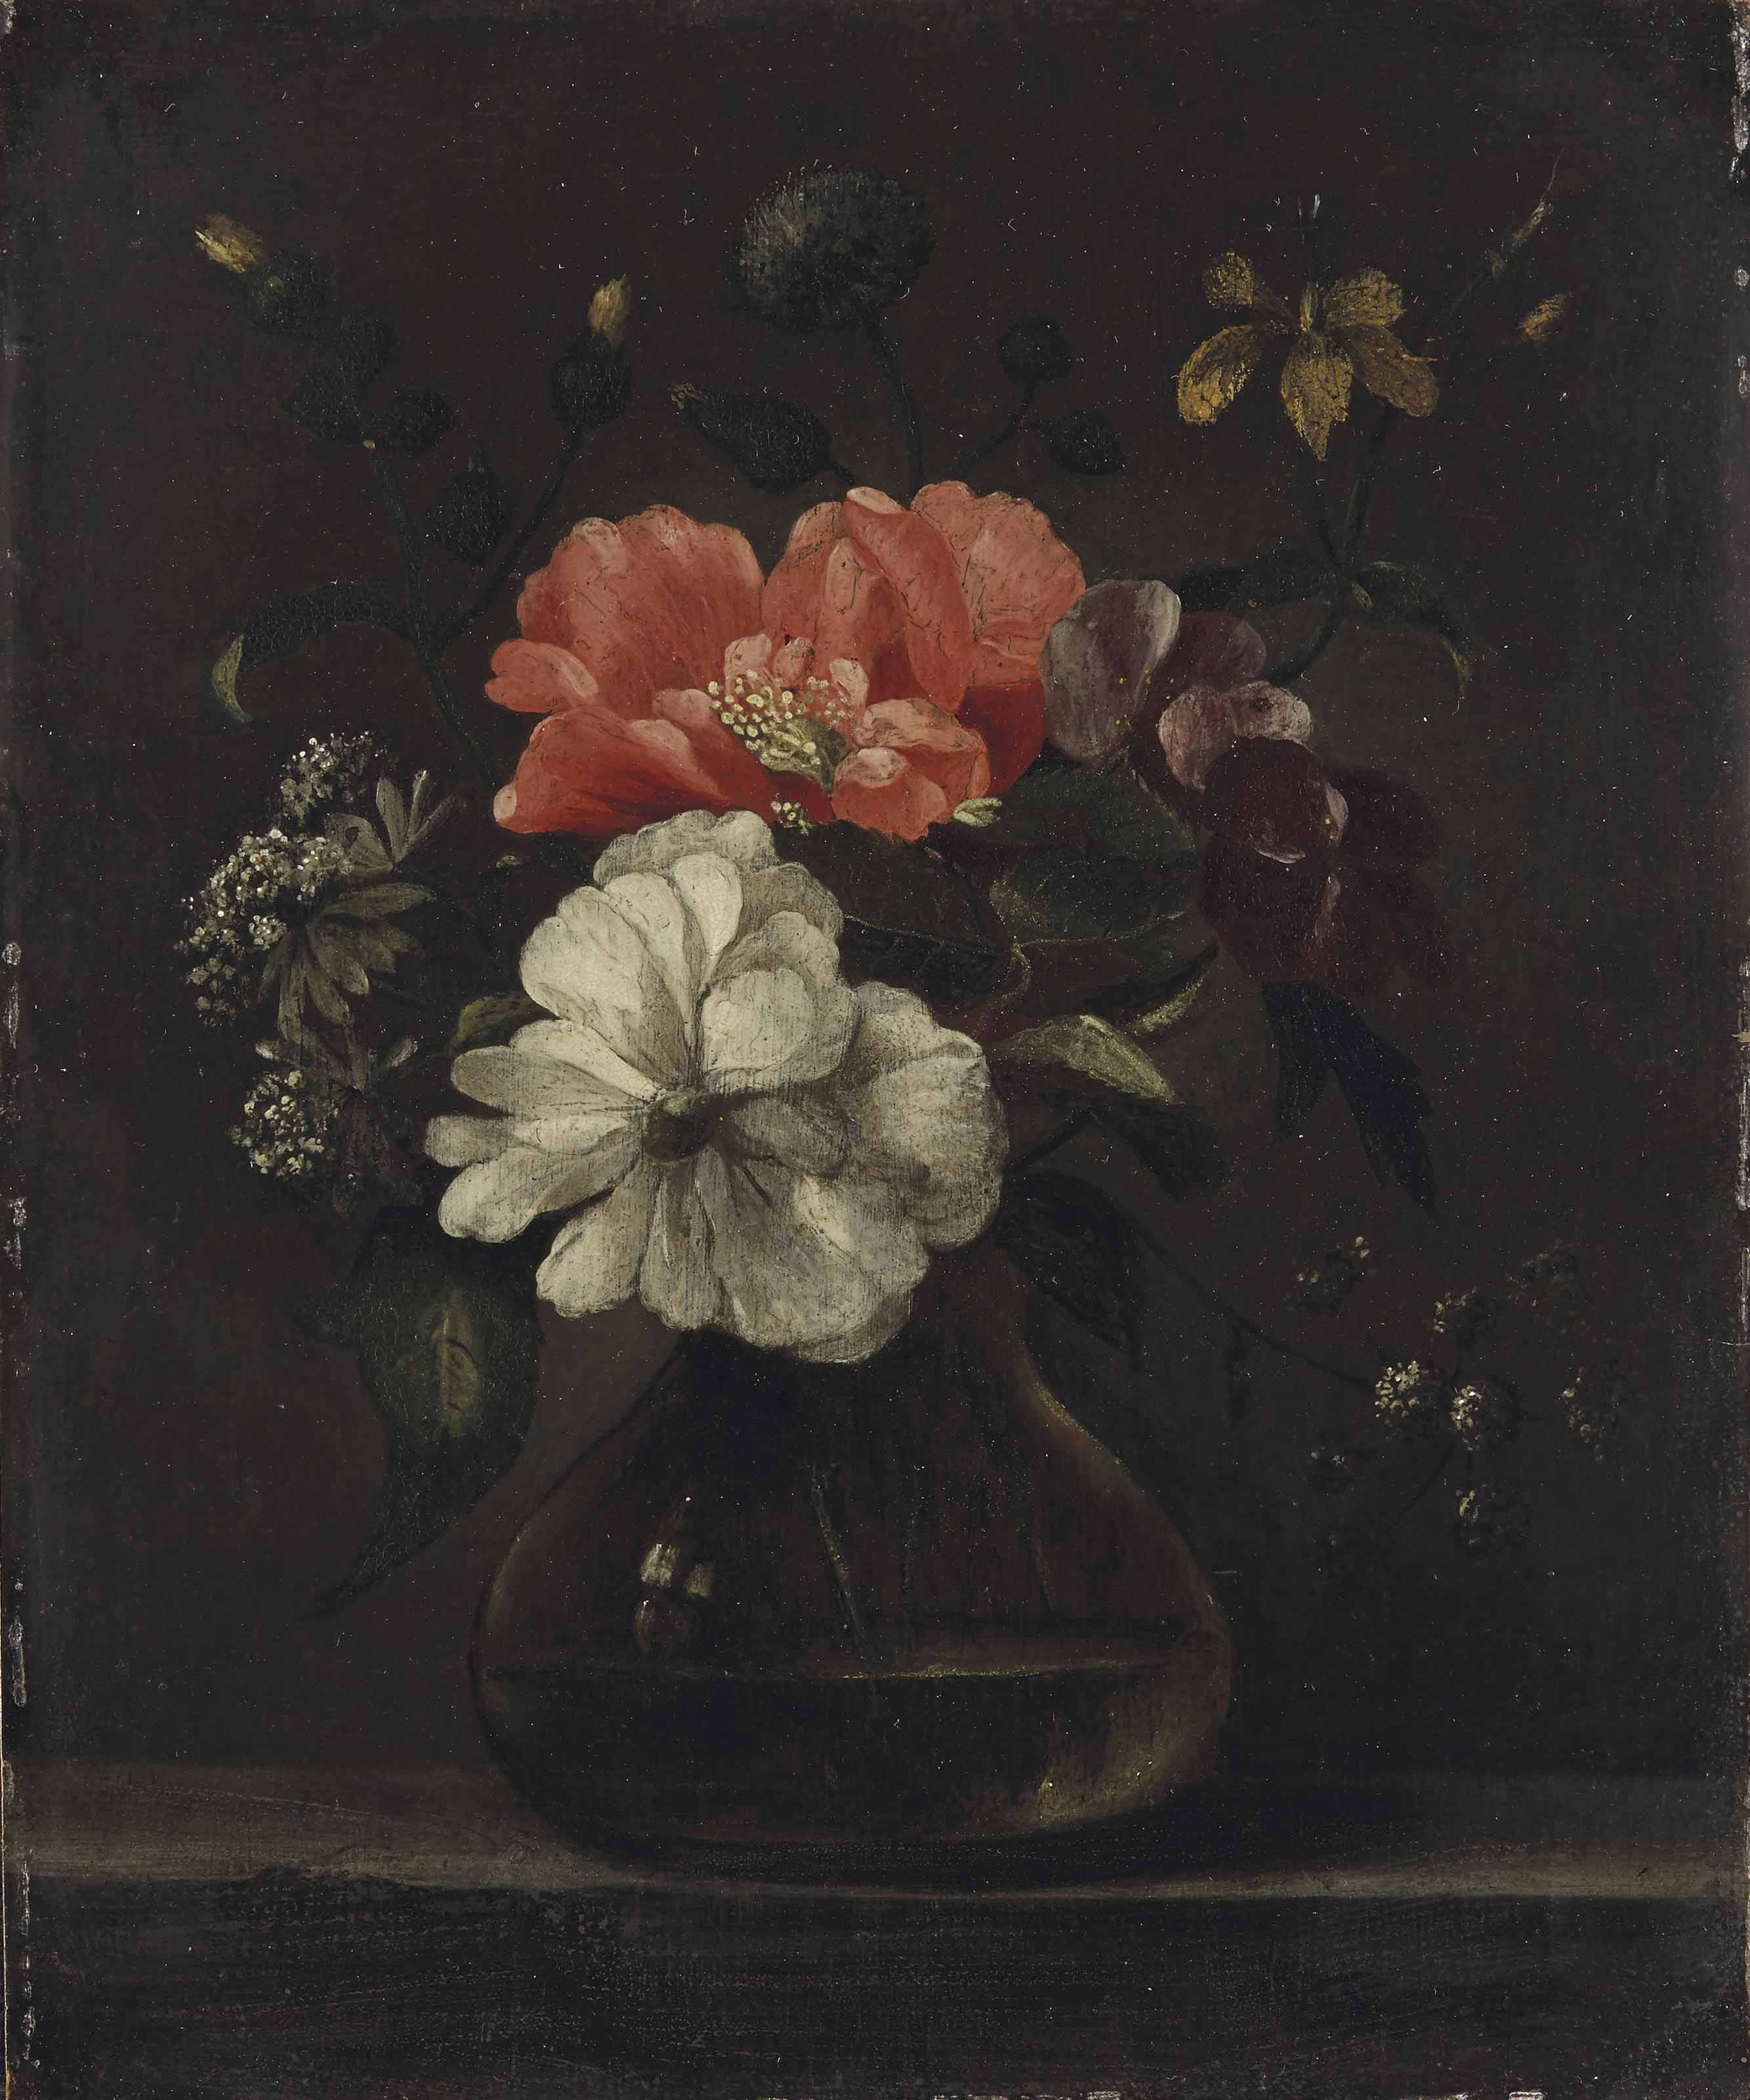 Flowers in a glass vase on a stone ledge